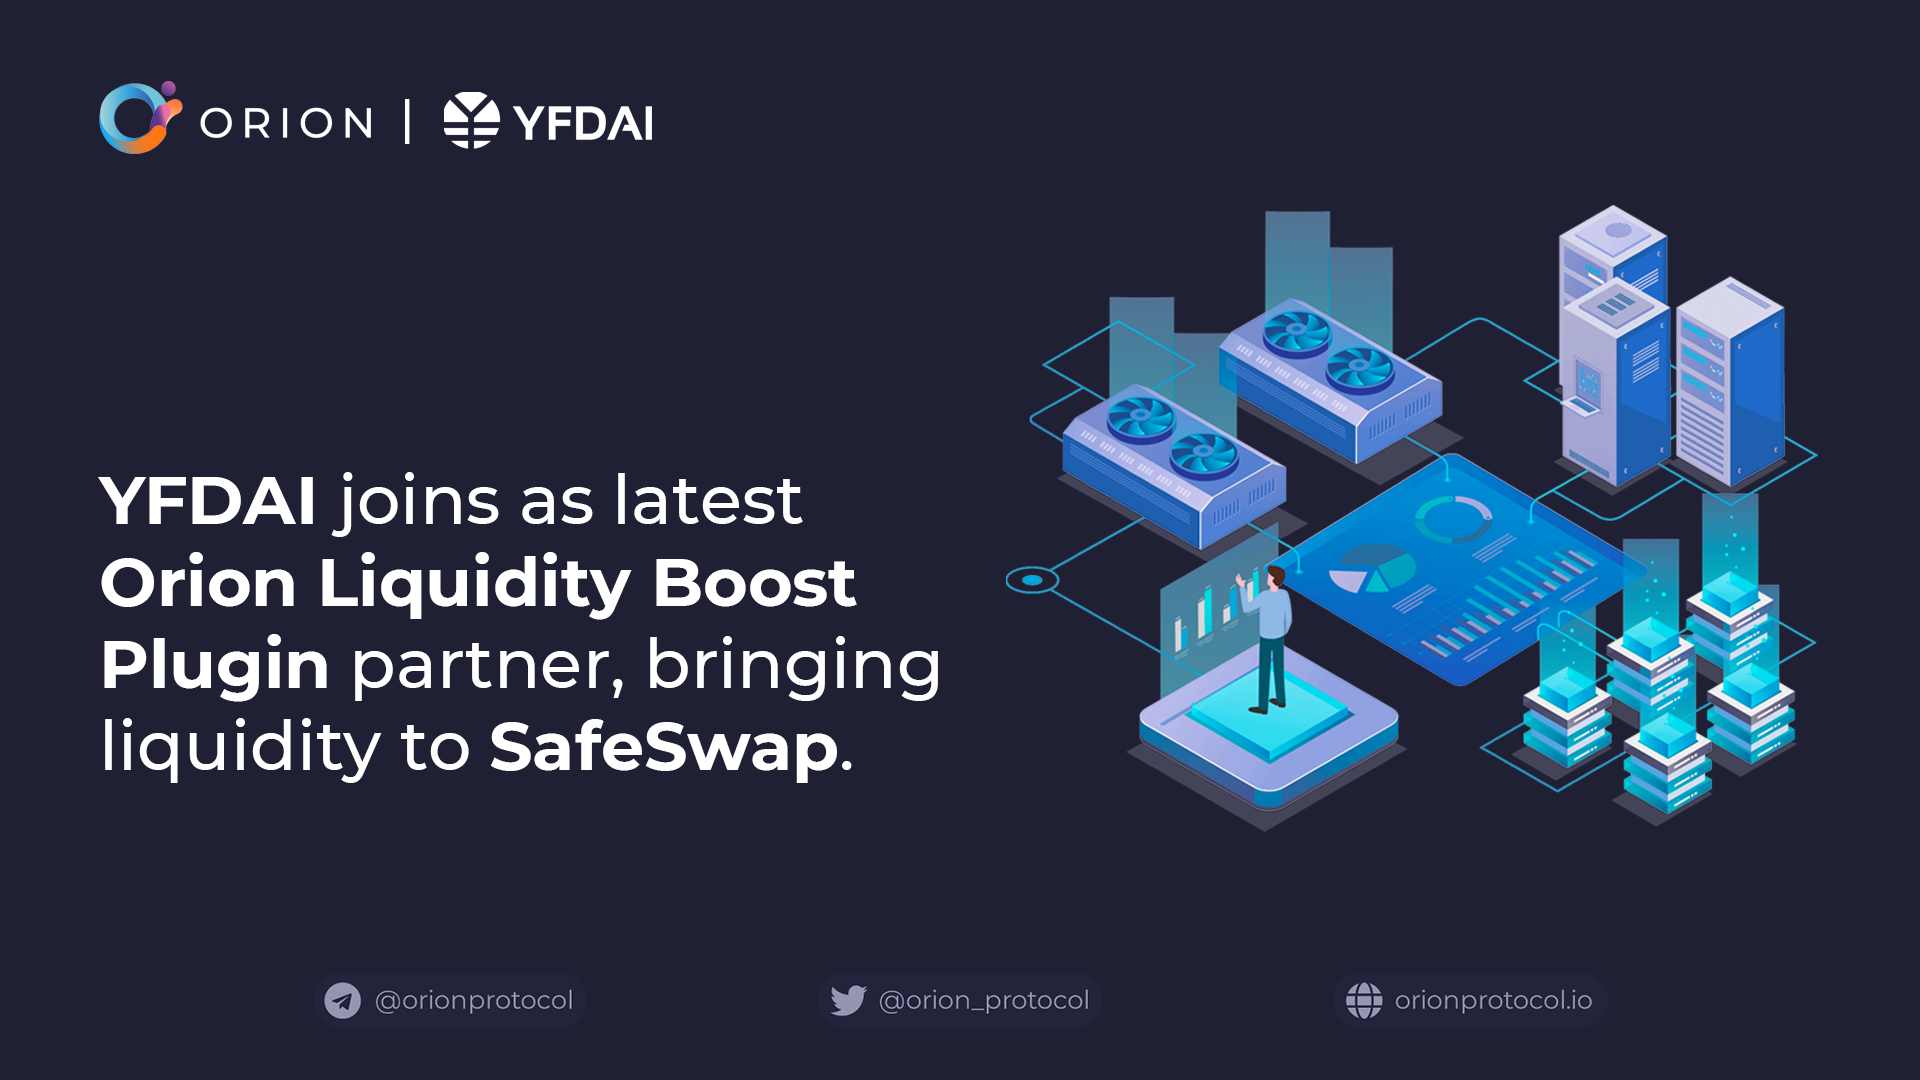 YFDAI joins as Liquidity Boost Plugin partner